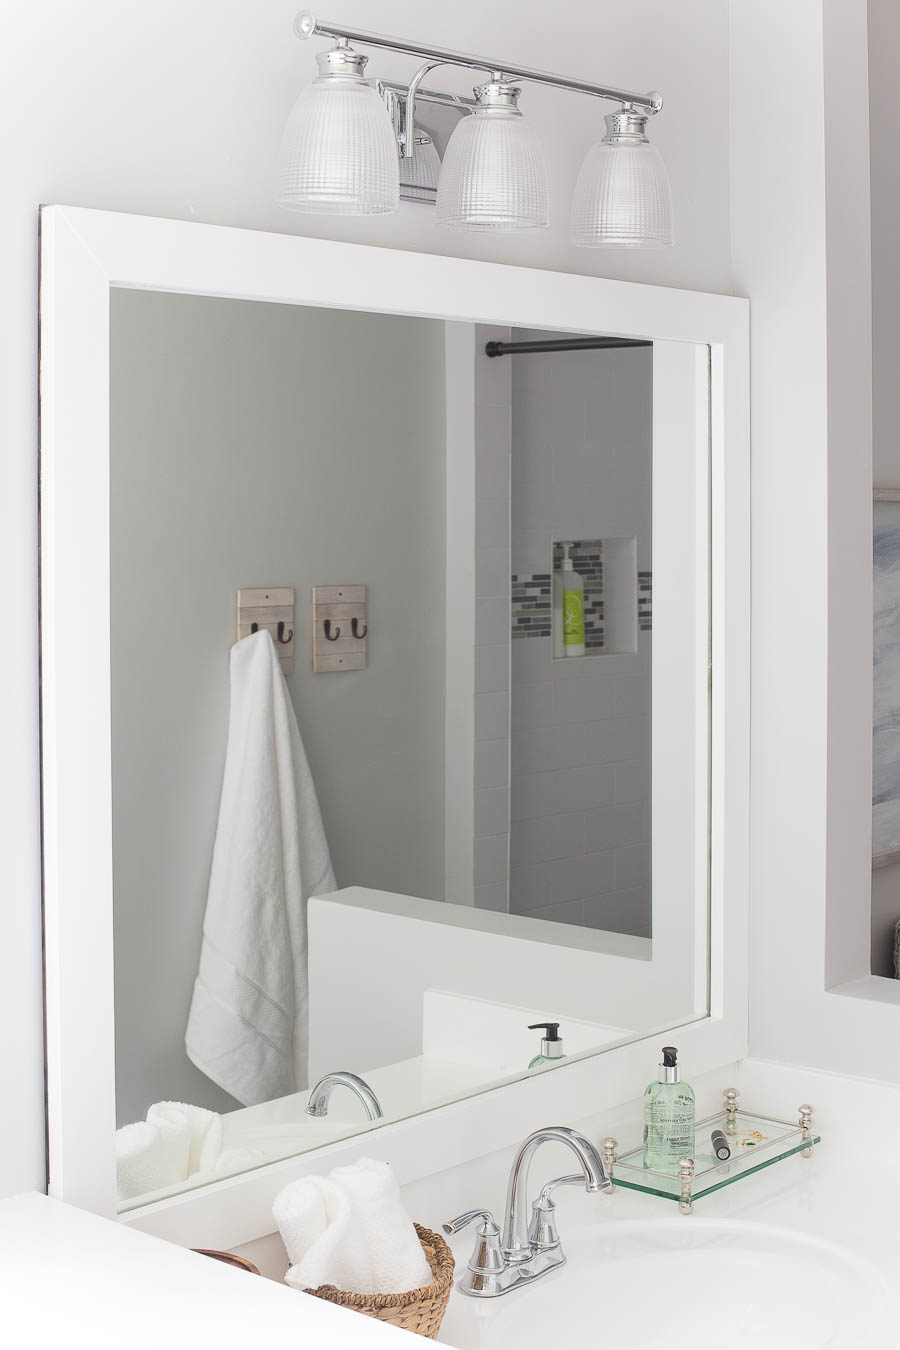 How to frame a bathroom mirror easy diy project for How to frame mirror in bathroom